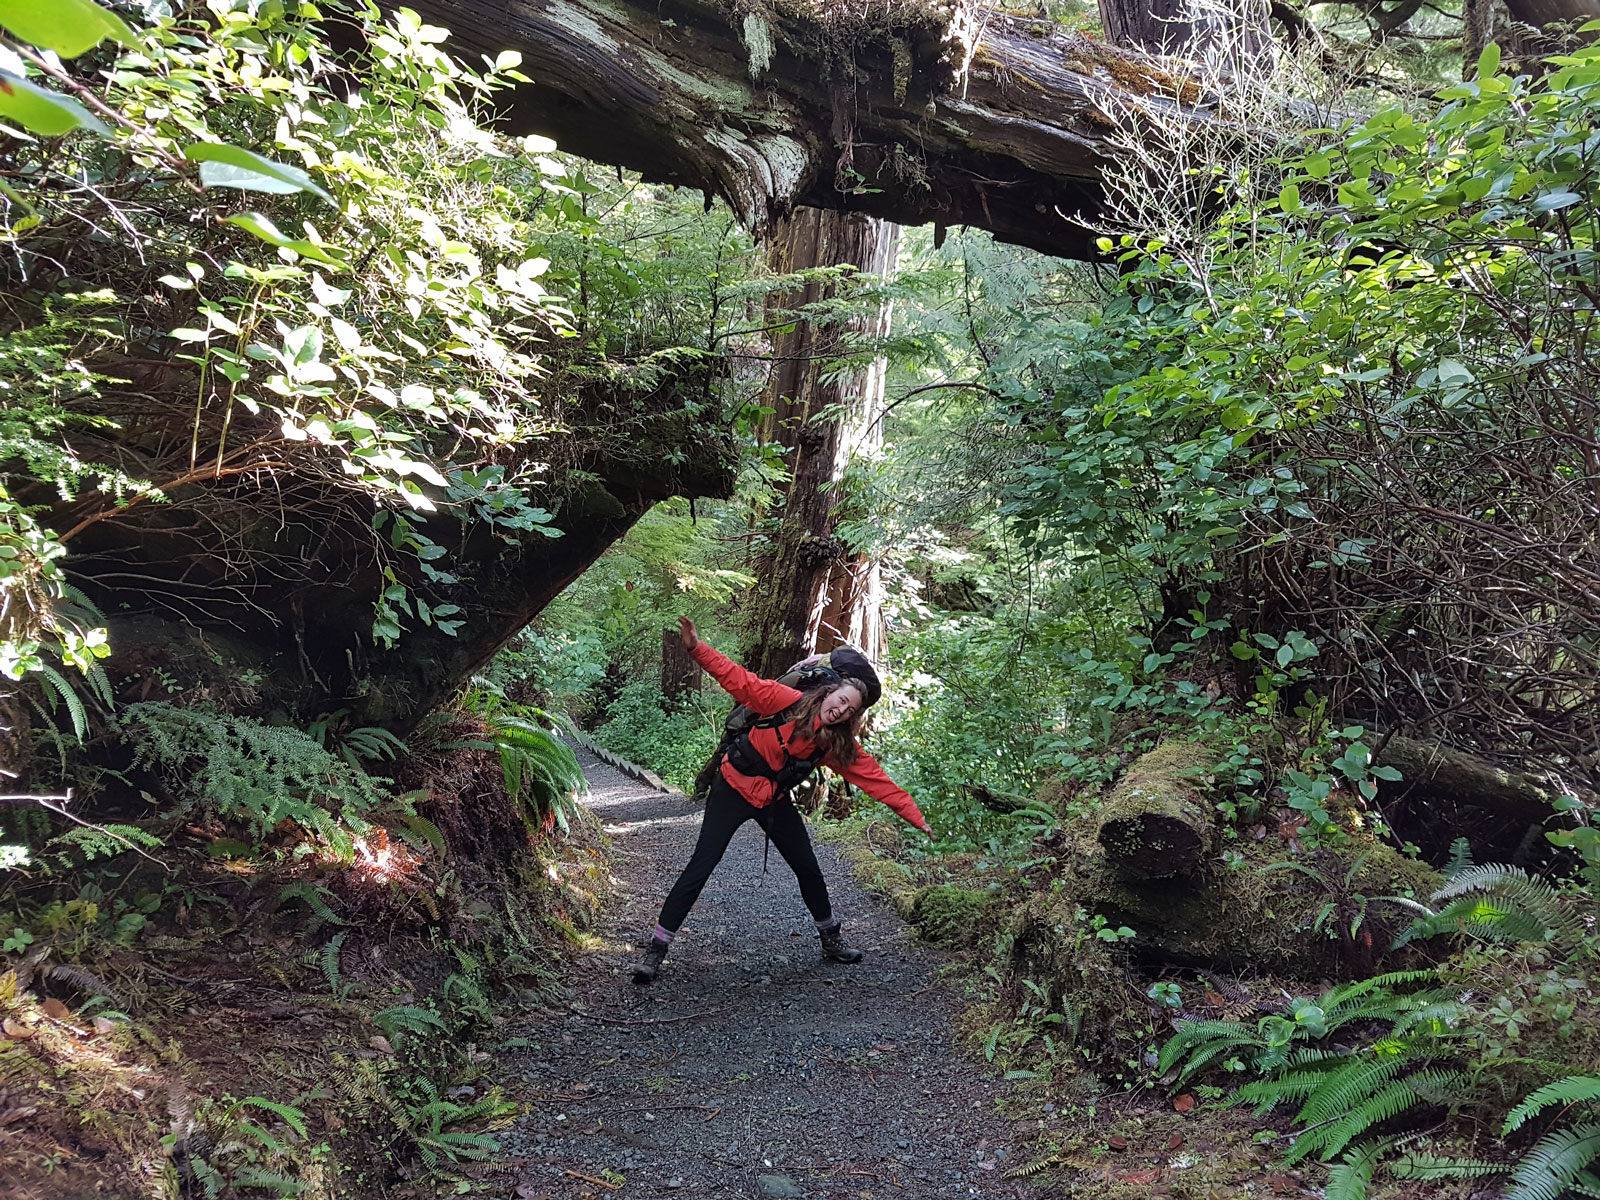 Woman wearing backpack exploring surrounding areas ofVancouver Island rainforest